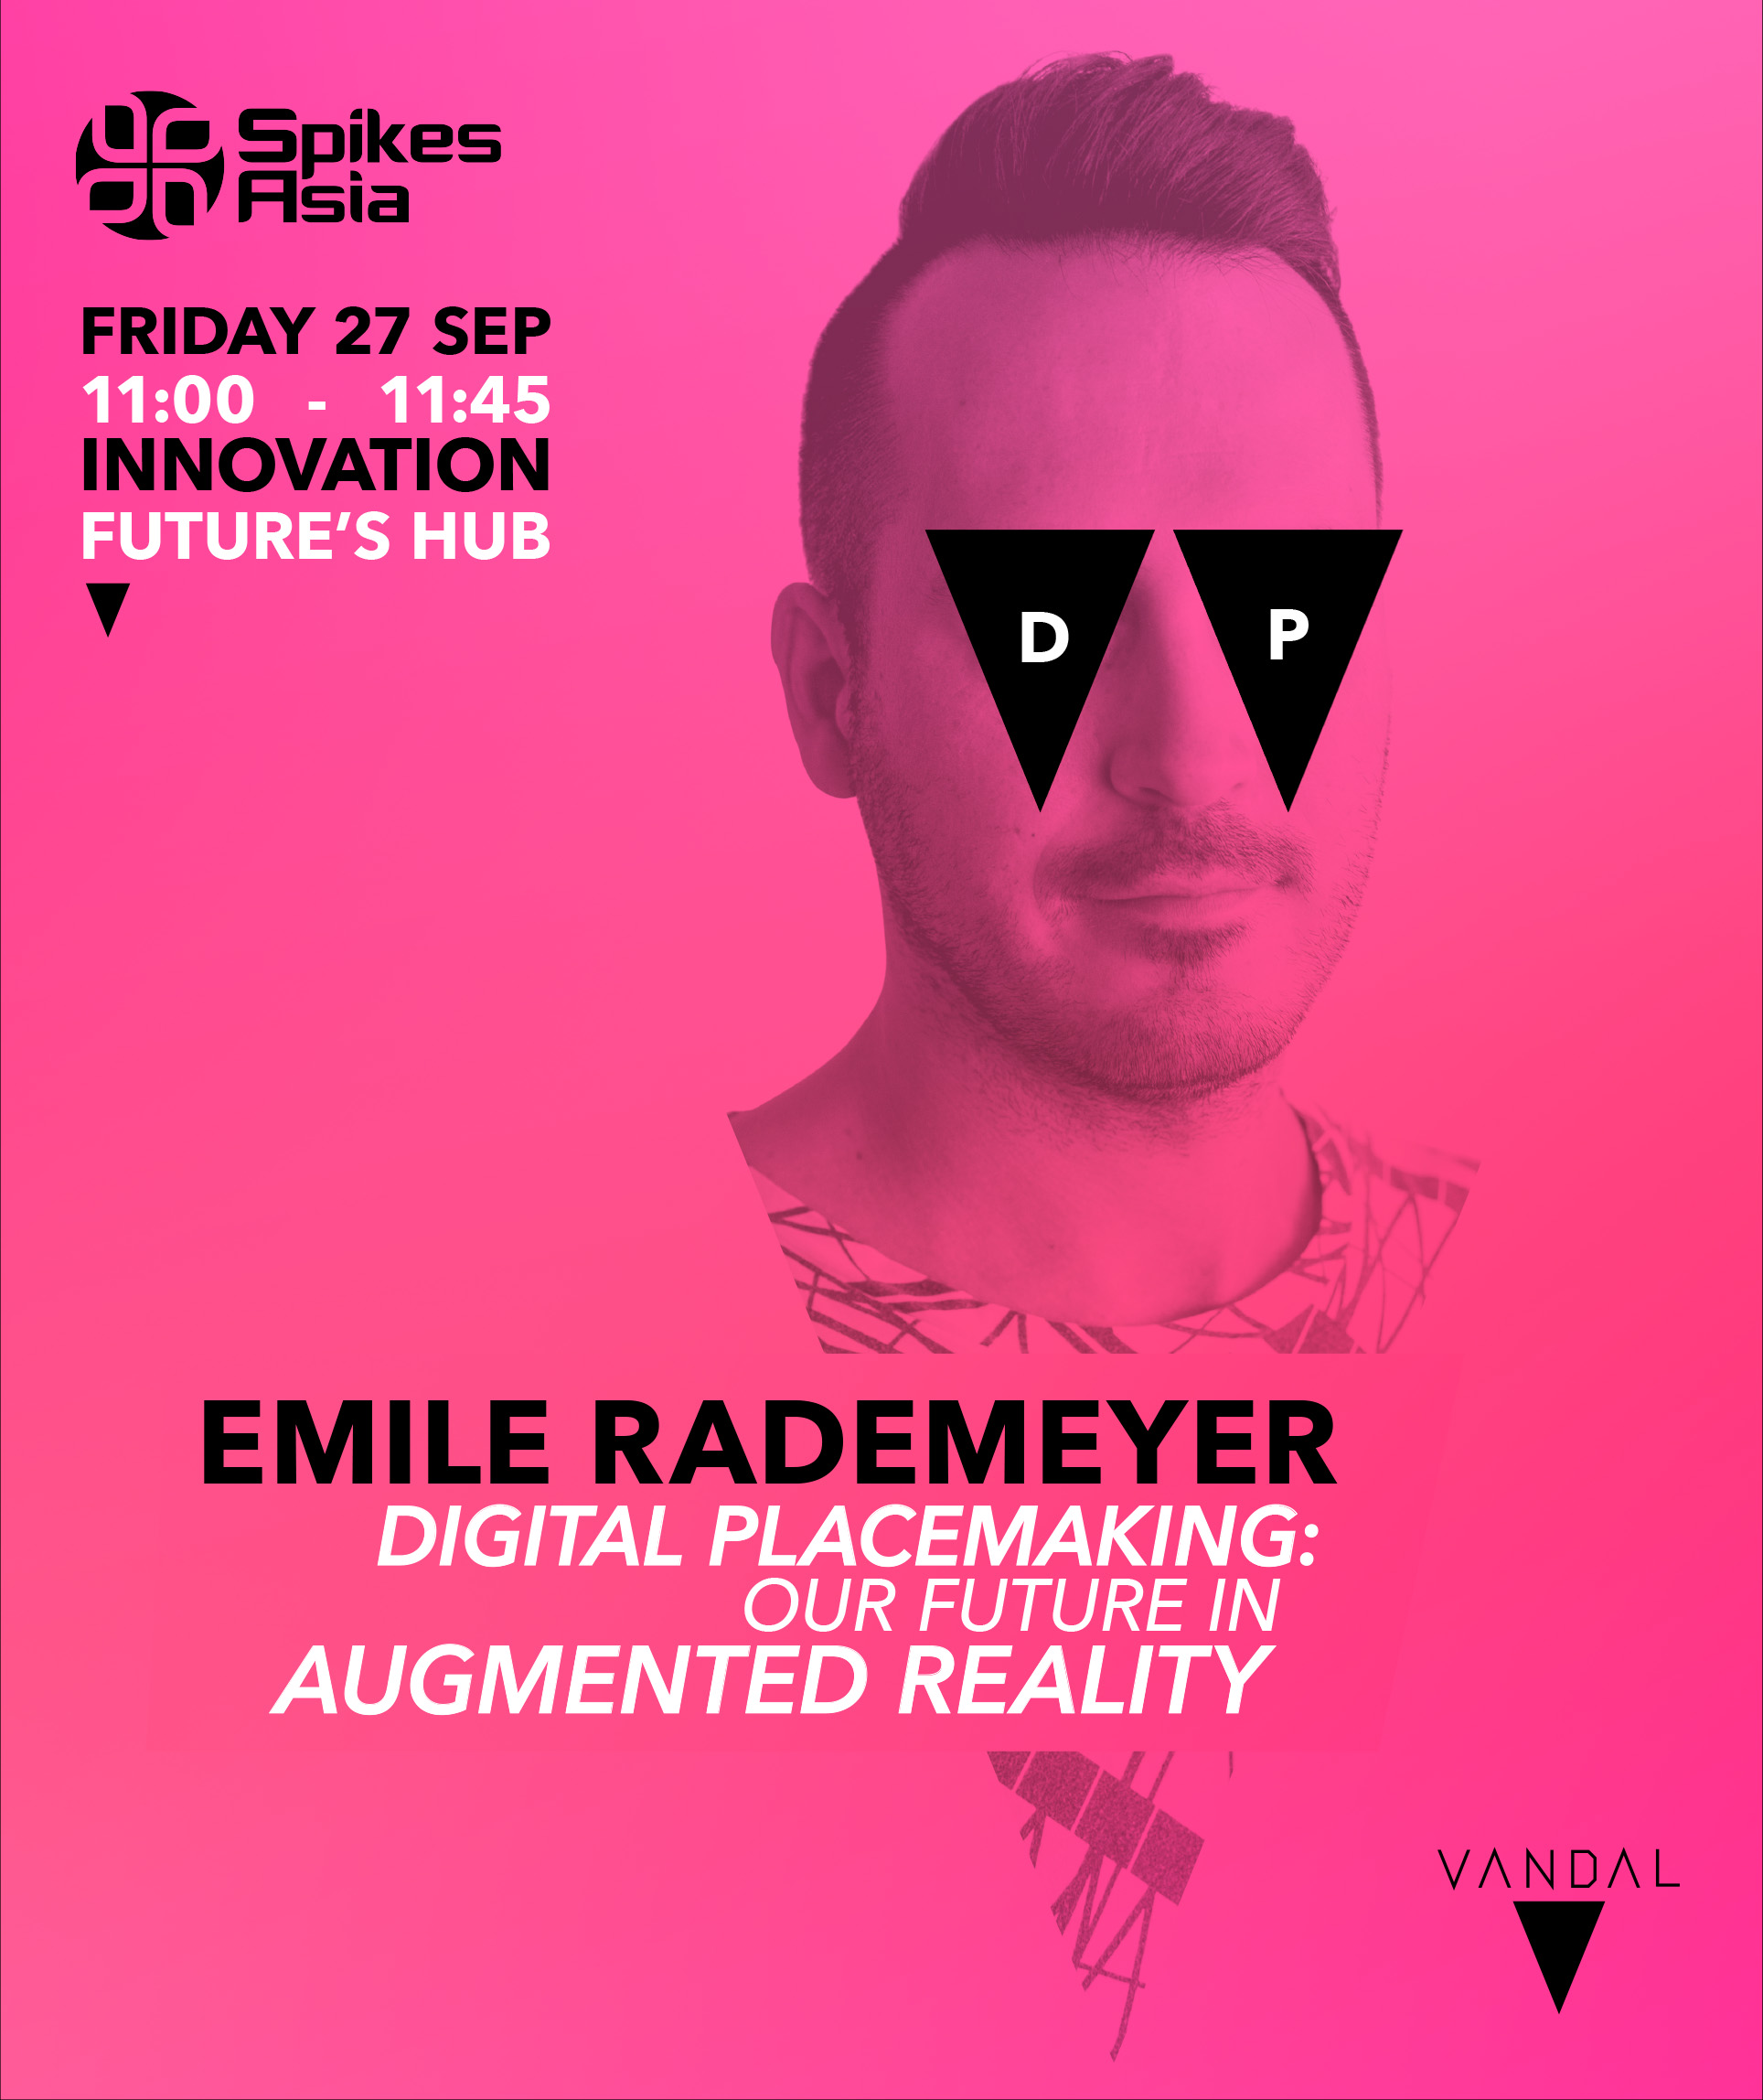 VANDAL creative director Emile Rademeyer to present Digital Placemaking at Spikes Asia